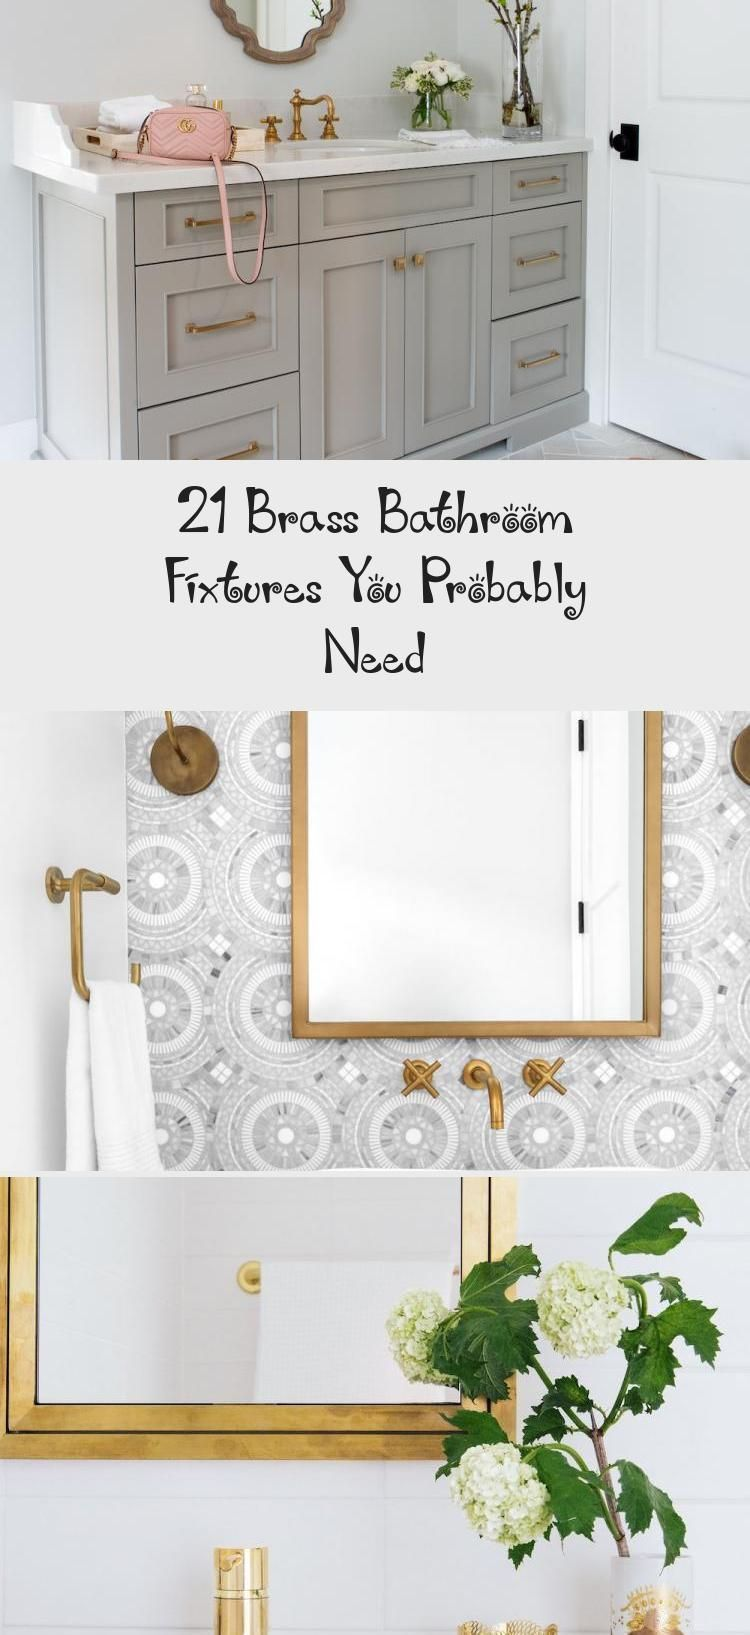 Photo of 21 Brass Bathroom Fixtures You Probably Need – Decoration